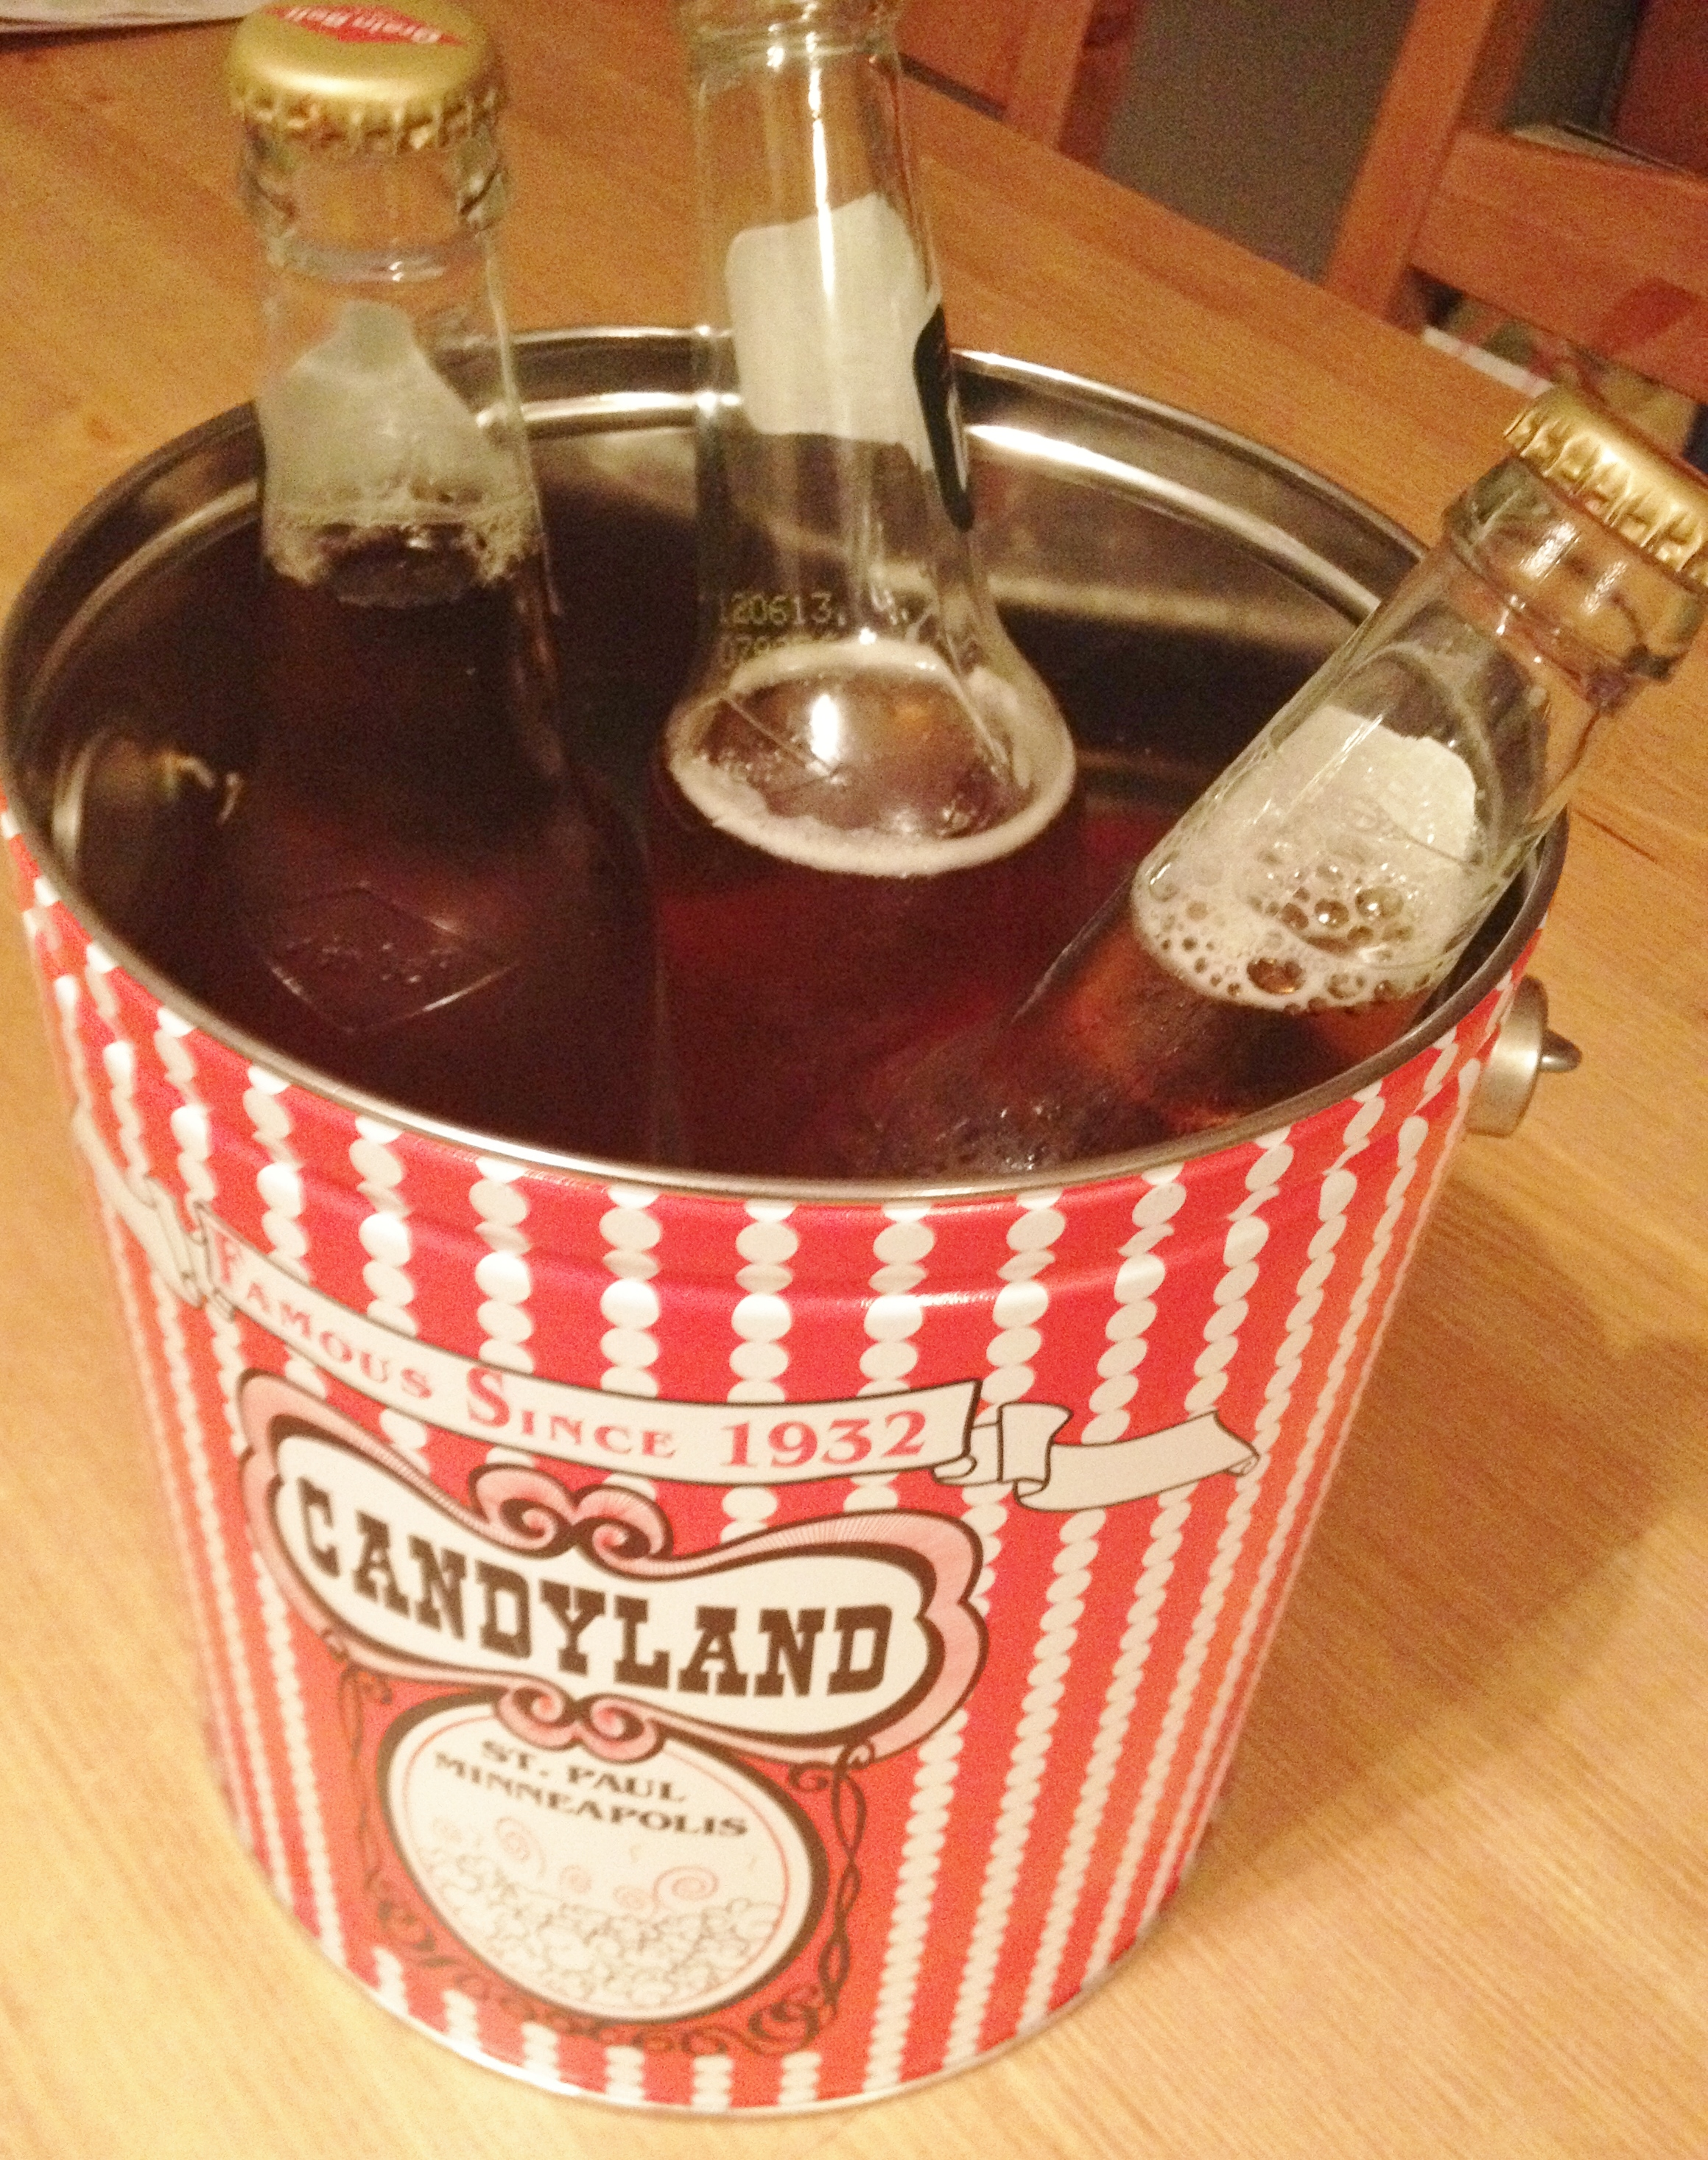 Candyland Ice bucket with Grain Belt and Summit Beer